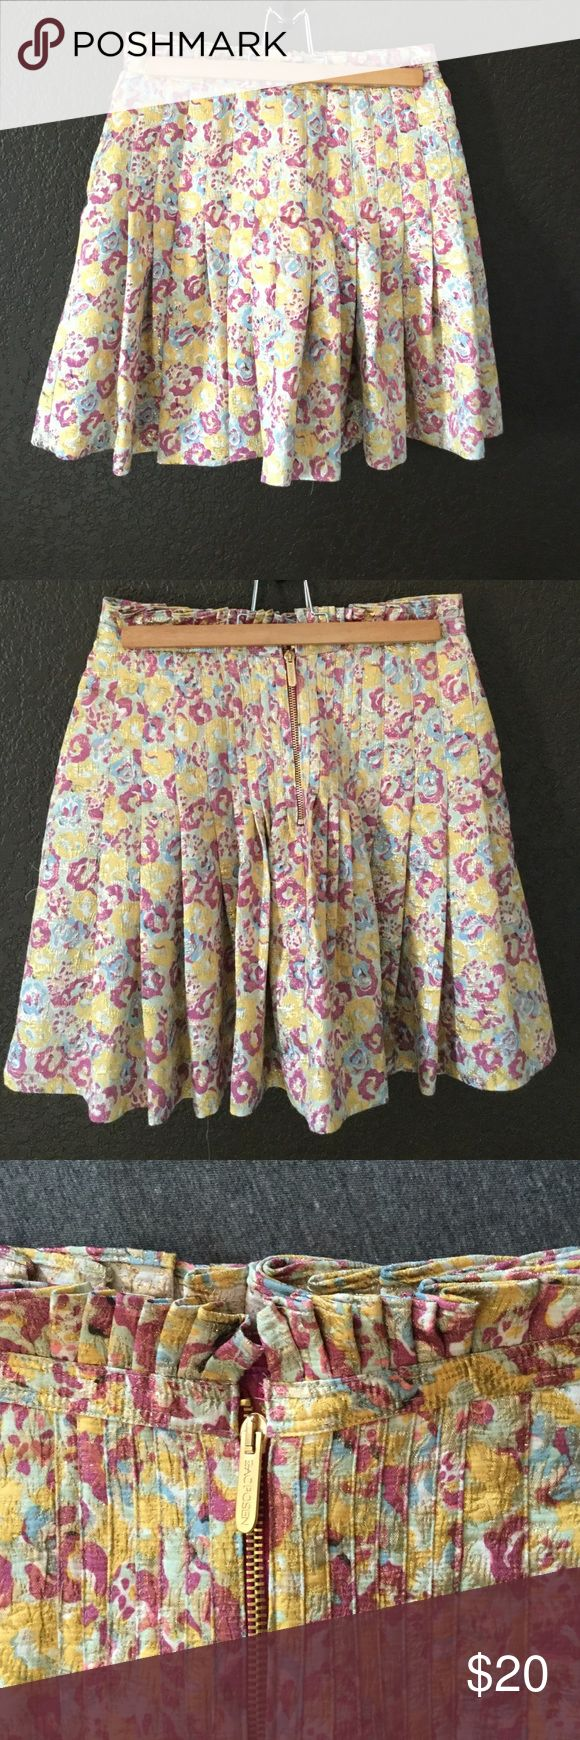 Zac Posen pleated skirt This floral print skirt with metallic accents is perfect for Holliday parties! Lightly worn and used as an Effie Trinket Costume lol. Brand is Zac Posen for Target. Price flexible. Zac Posen Skirts Mini